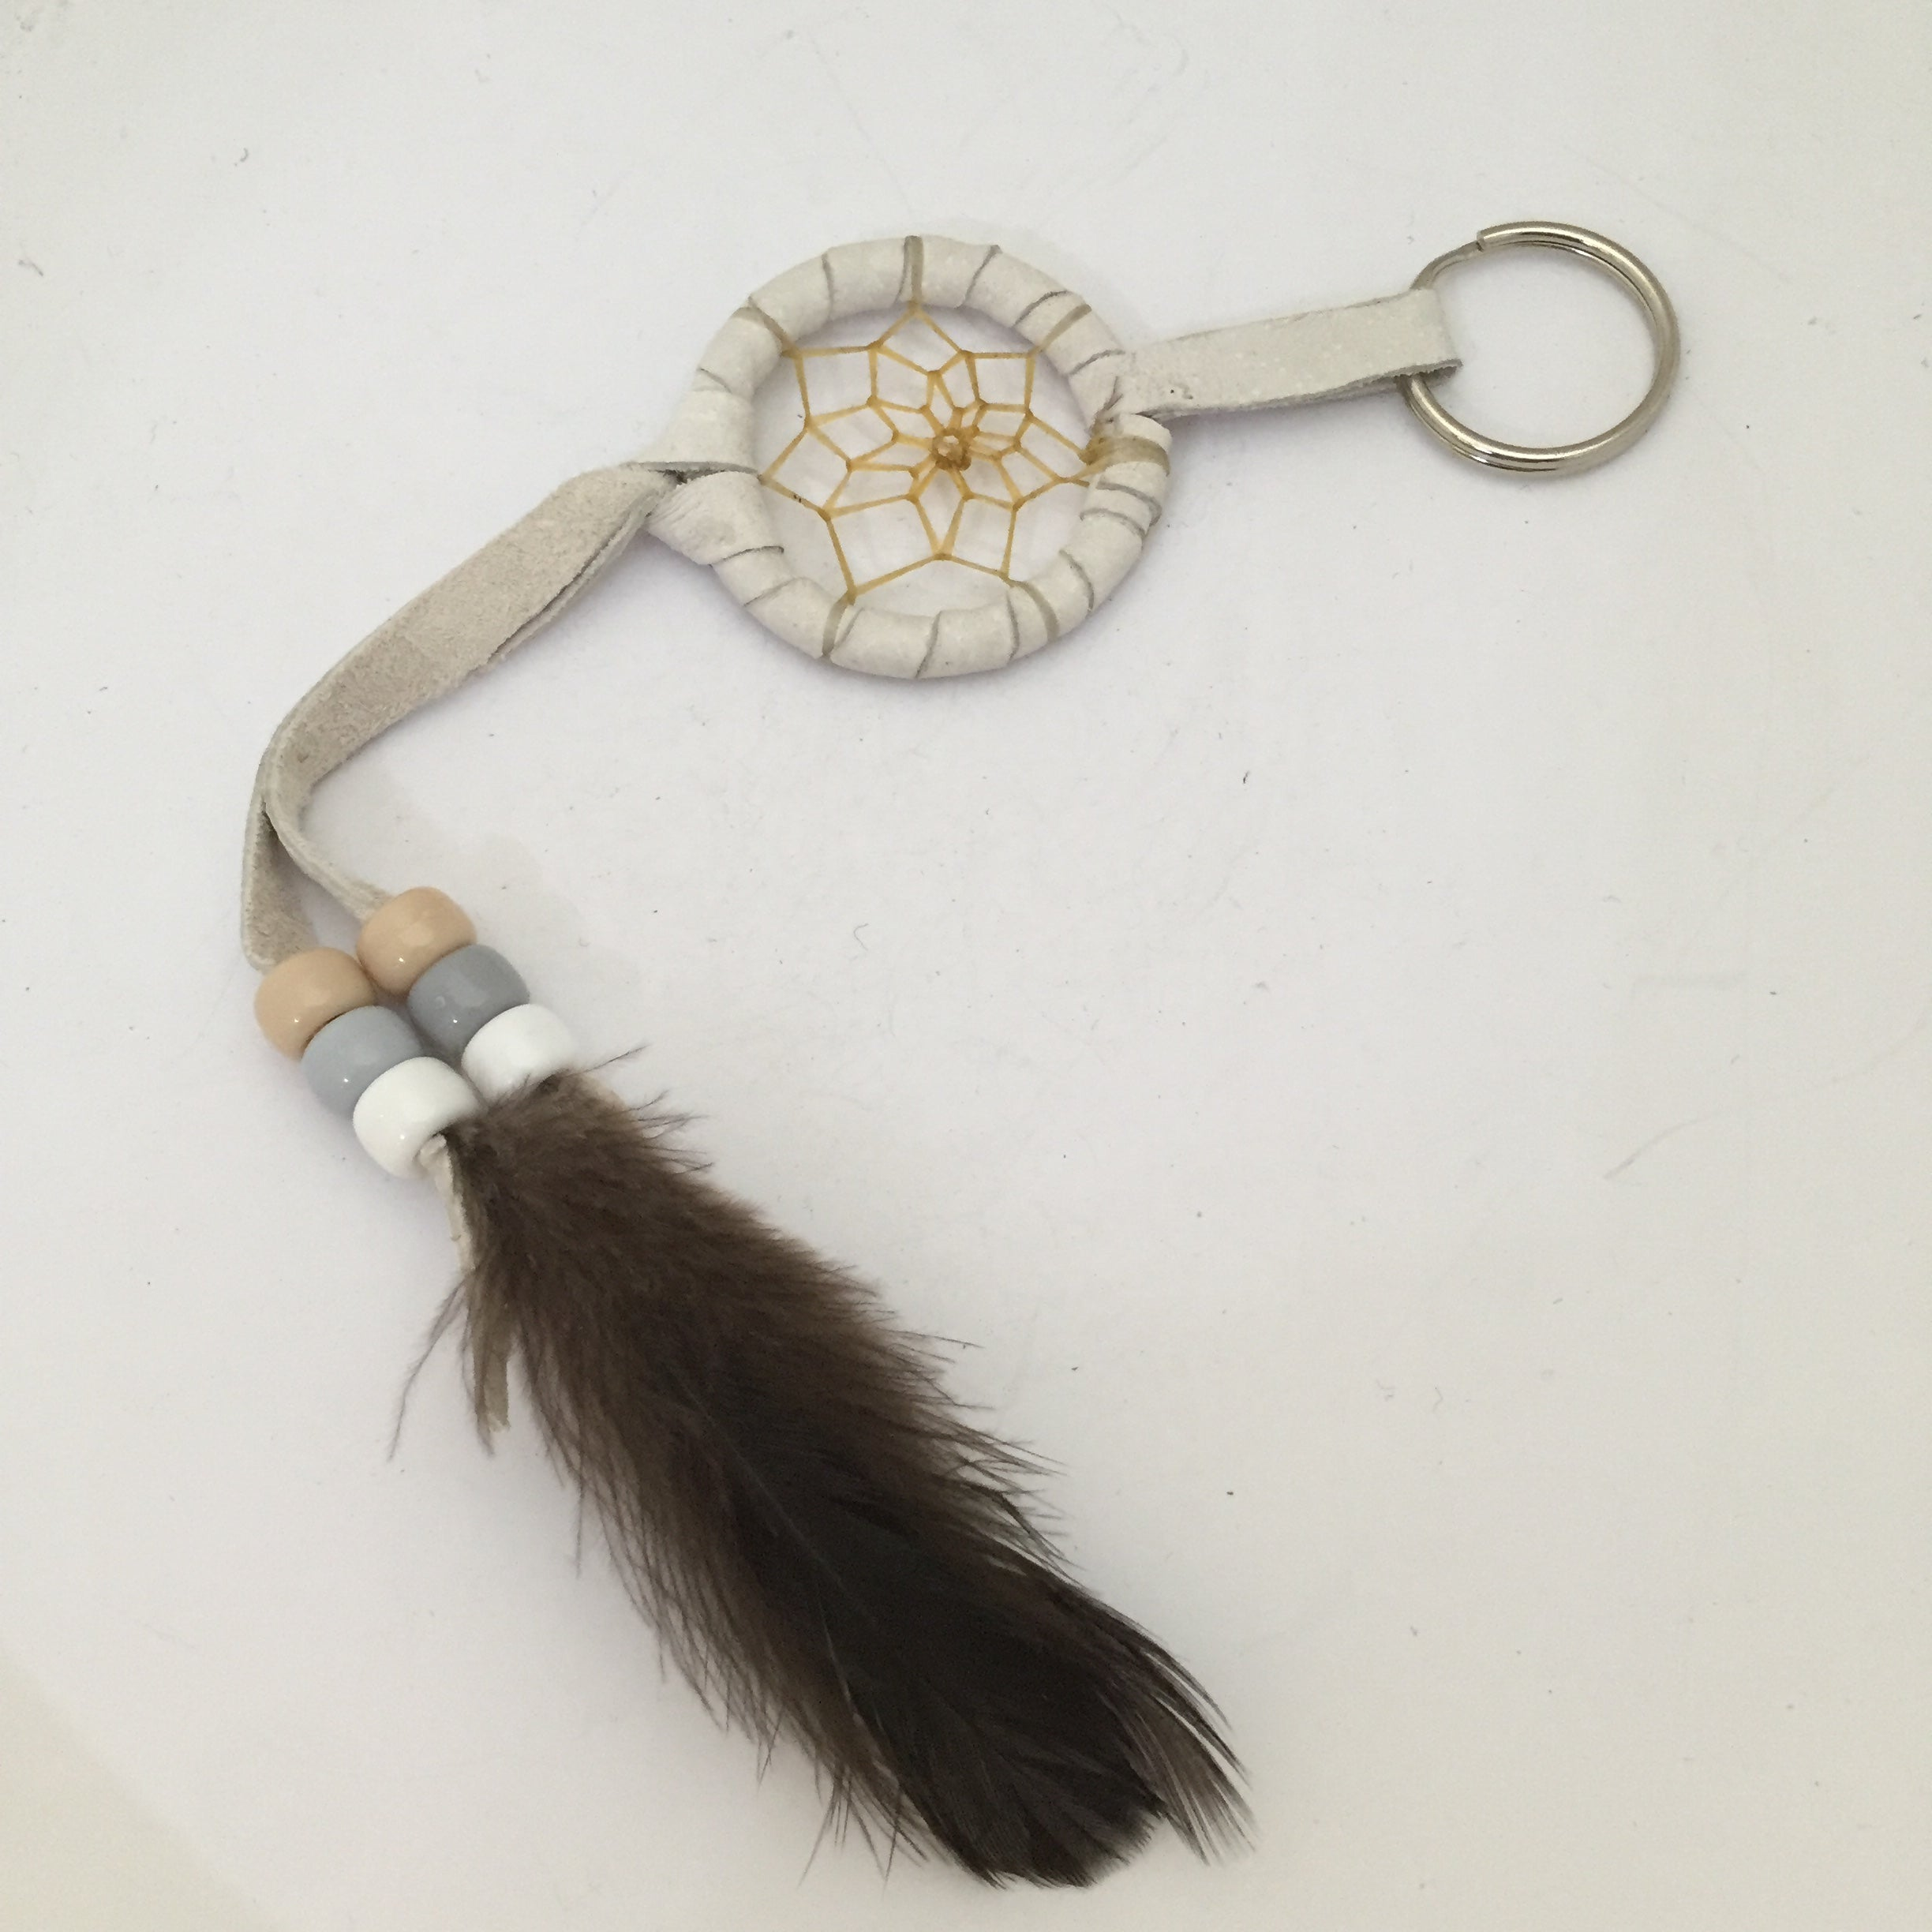 Dream catcher key ring